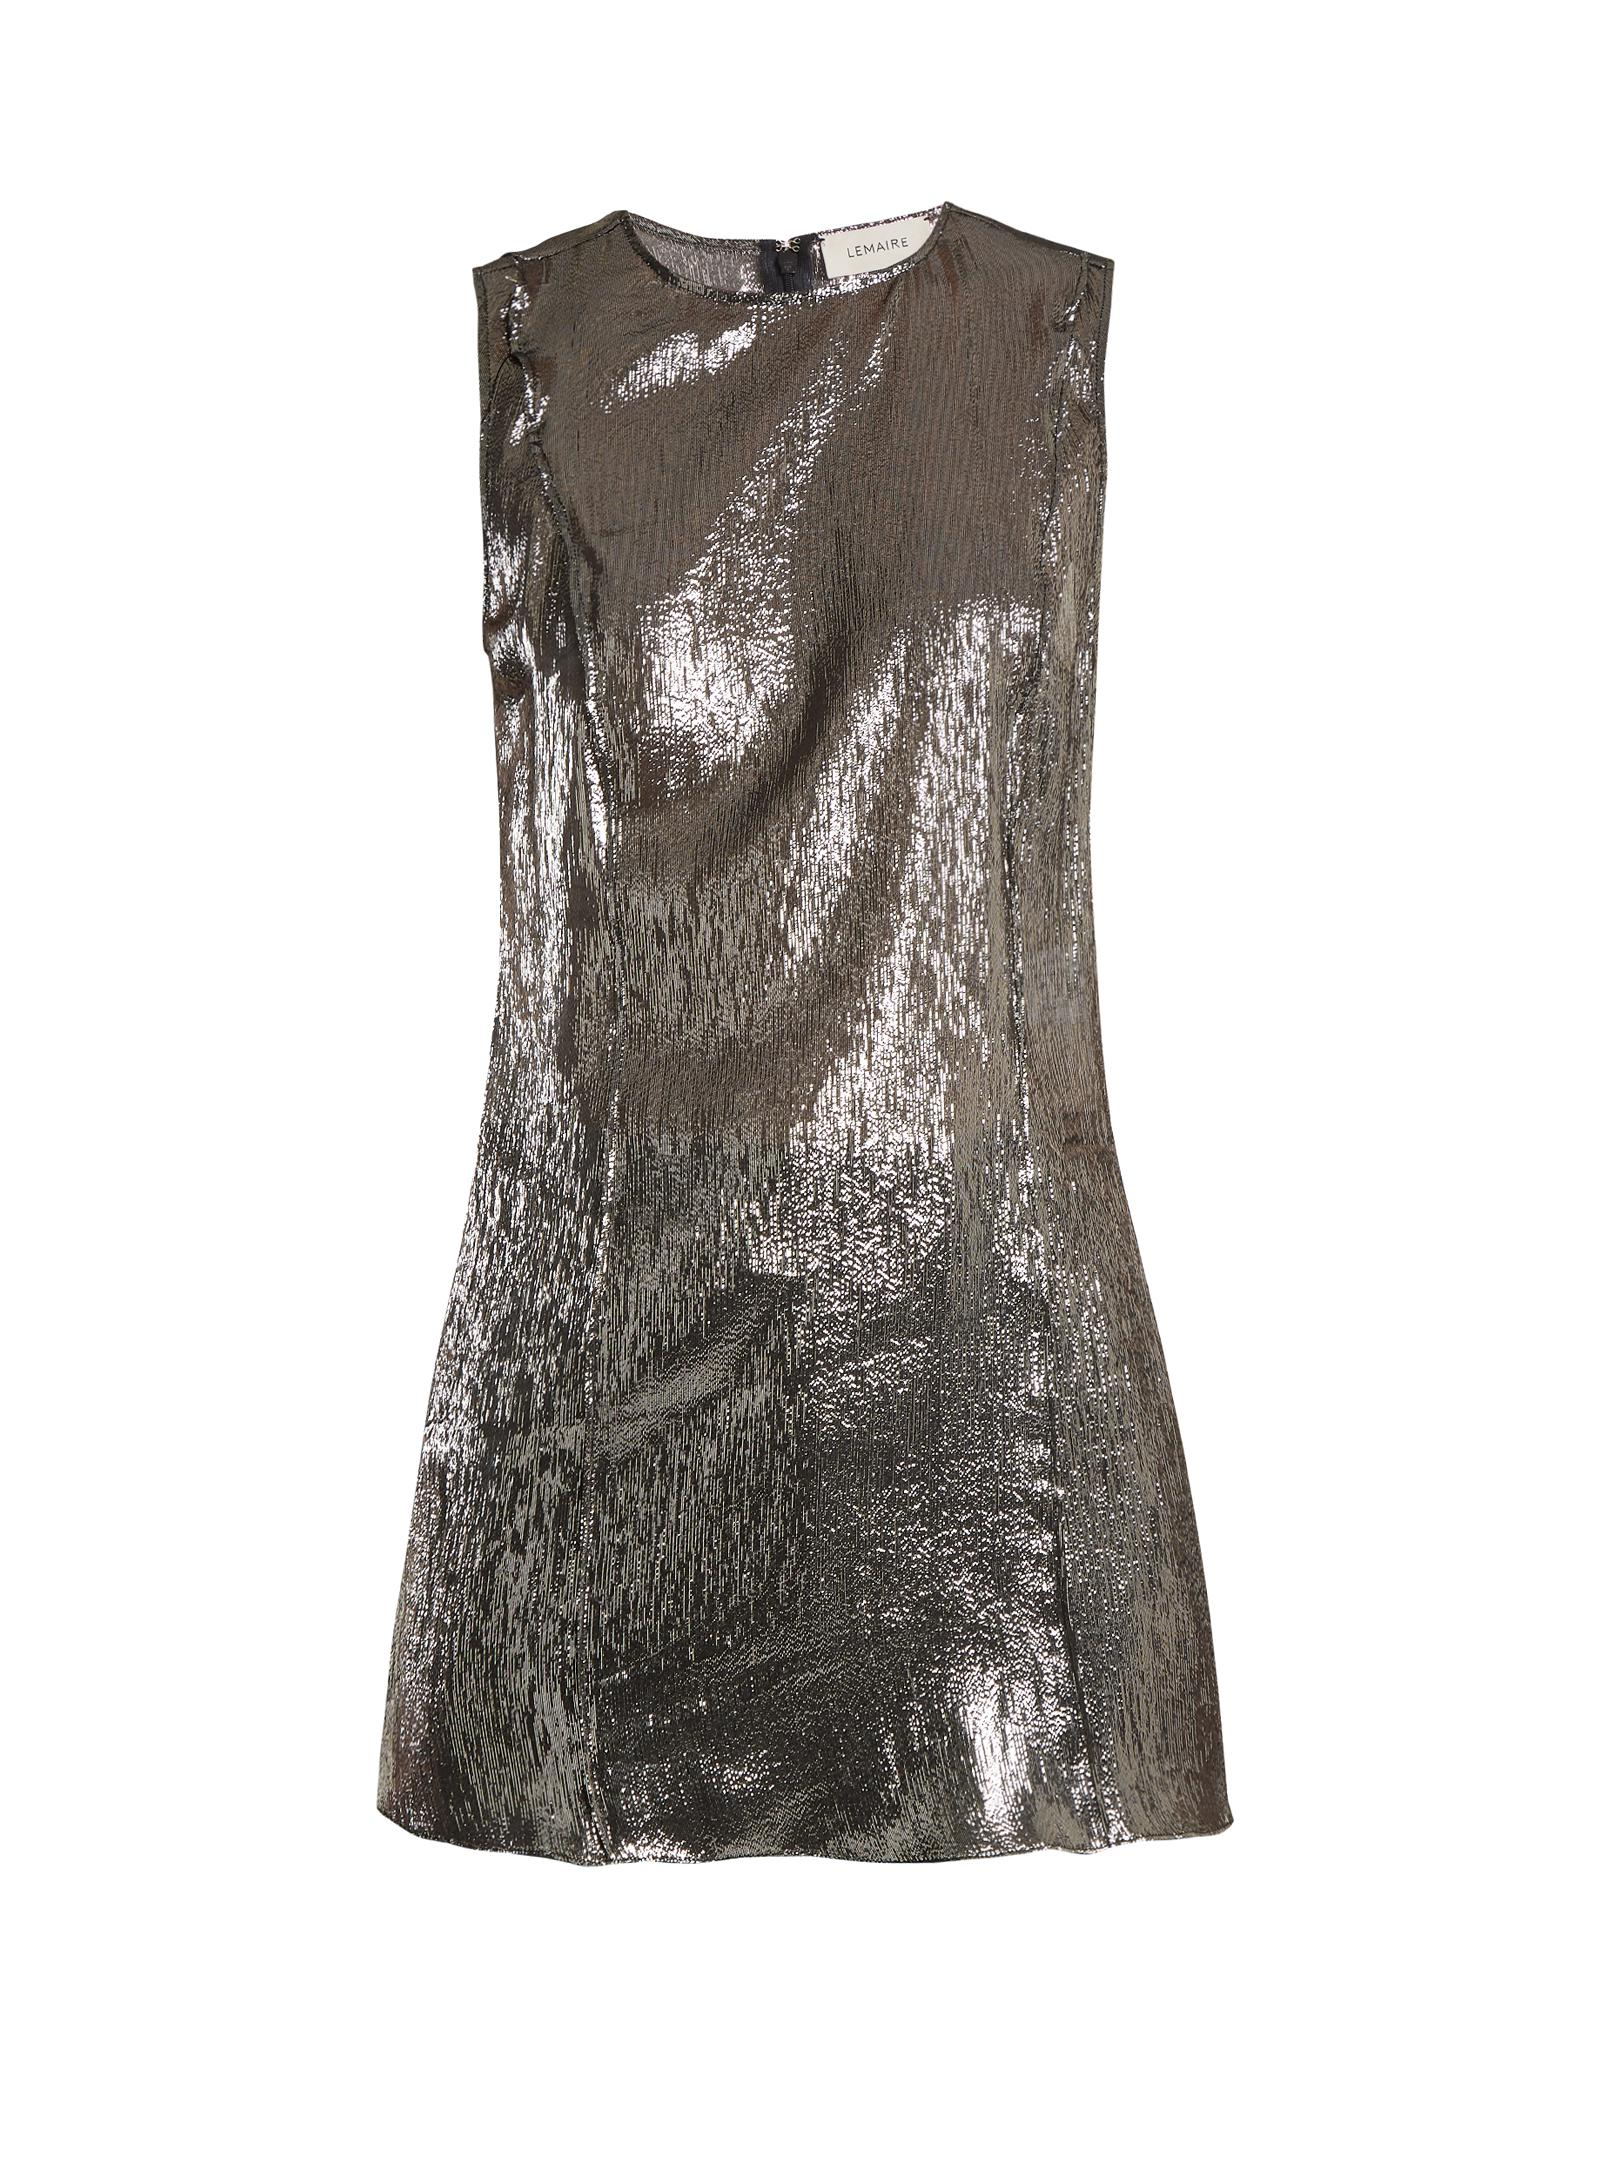 6fabe043055b Lemaire Round-neck Sleeveless Top in Metallic - Lyst